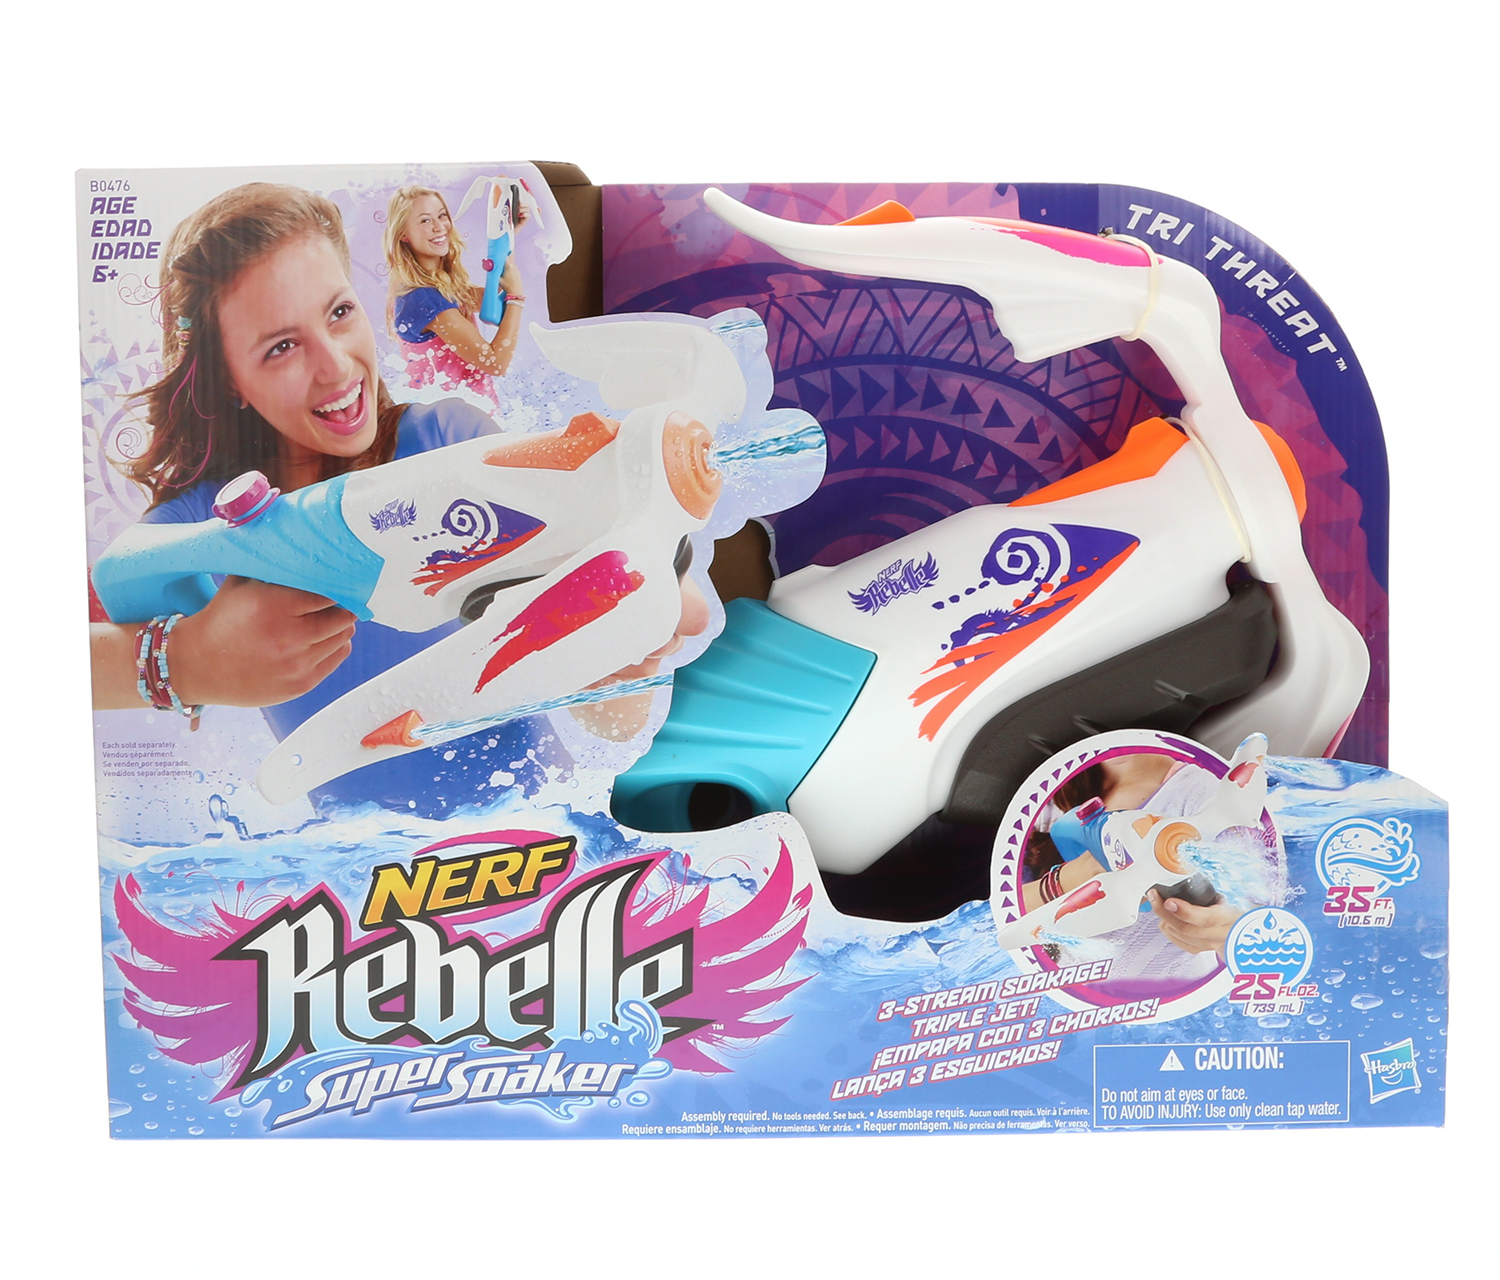 Water Toys Nerf Rebelle Super Soaker Tri Threat Blaster (Multipack of 3) by Mozlly